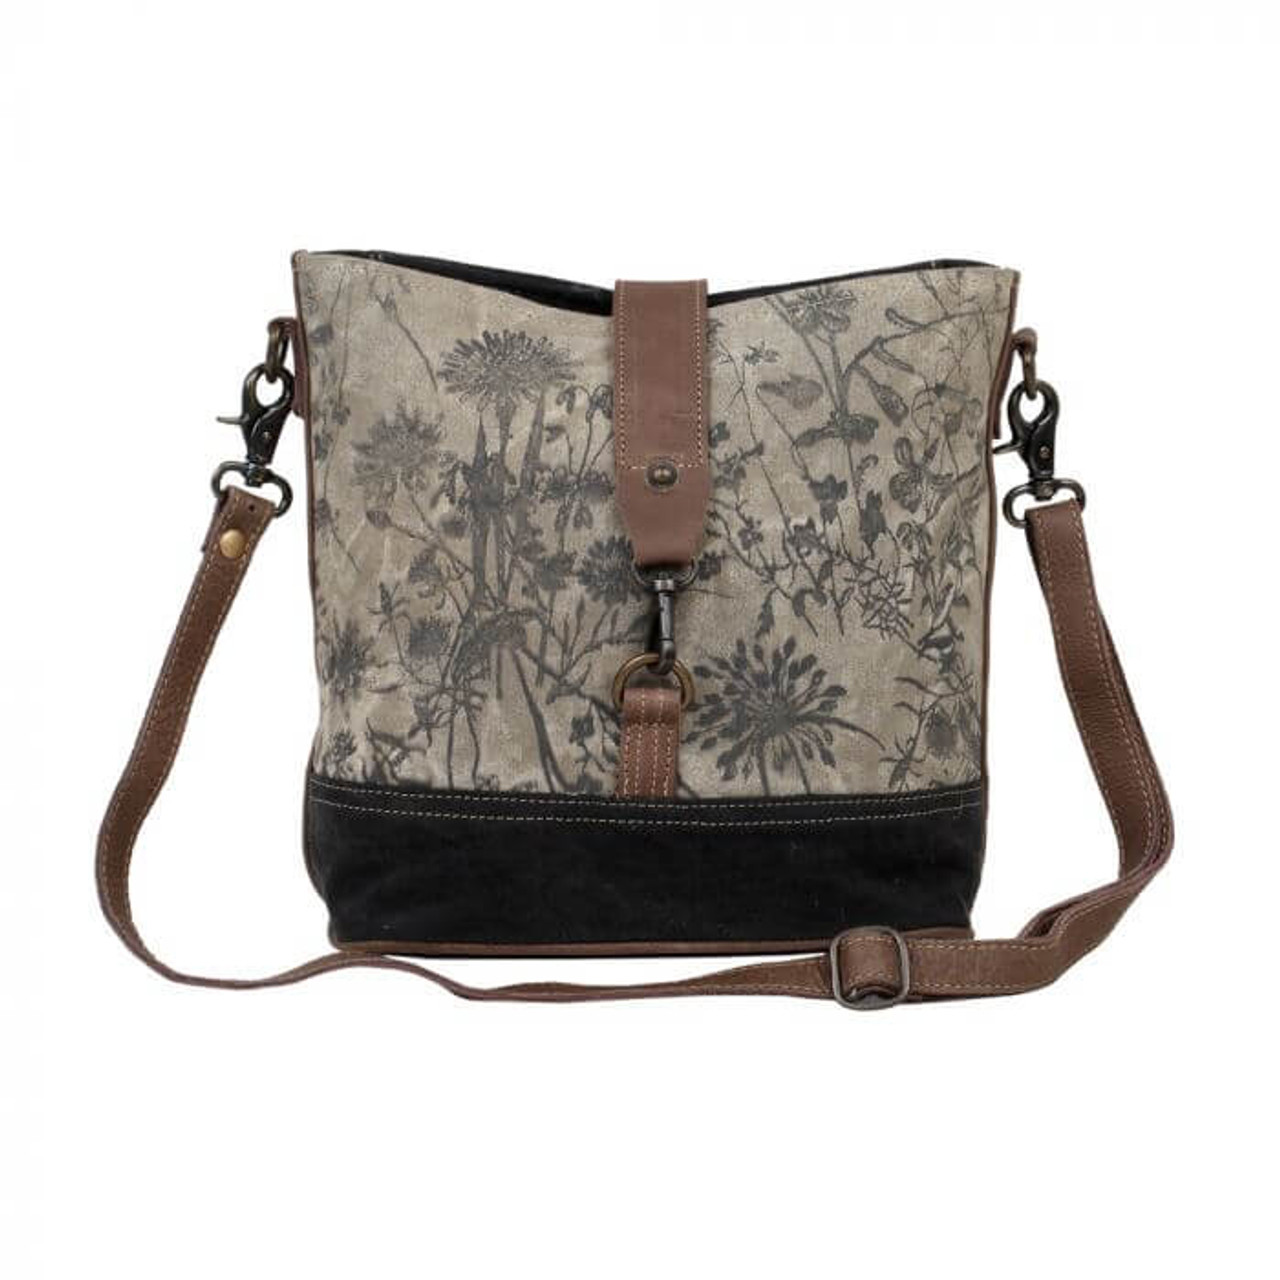 Botanical print on canvas with coordinating canvas bottom and back and leather details. Adjustable/removable shoulder strap gives options to carry on your shoulder or as a crossbody; zipper pocket at back; zipper close at top and leather flap that clips to bottom of bag; interior is fully lined and has one zipper pocket and two slip pockets.